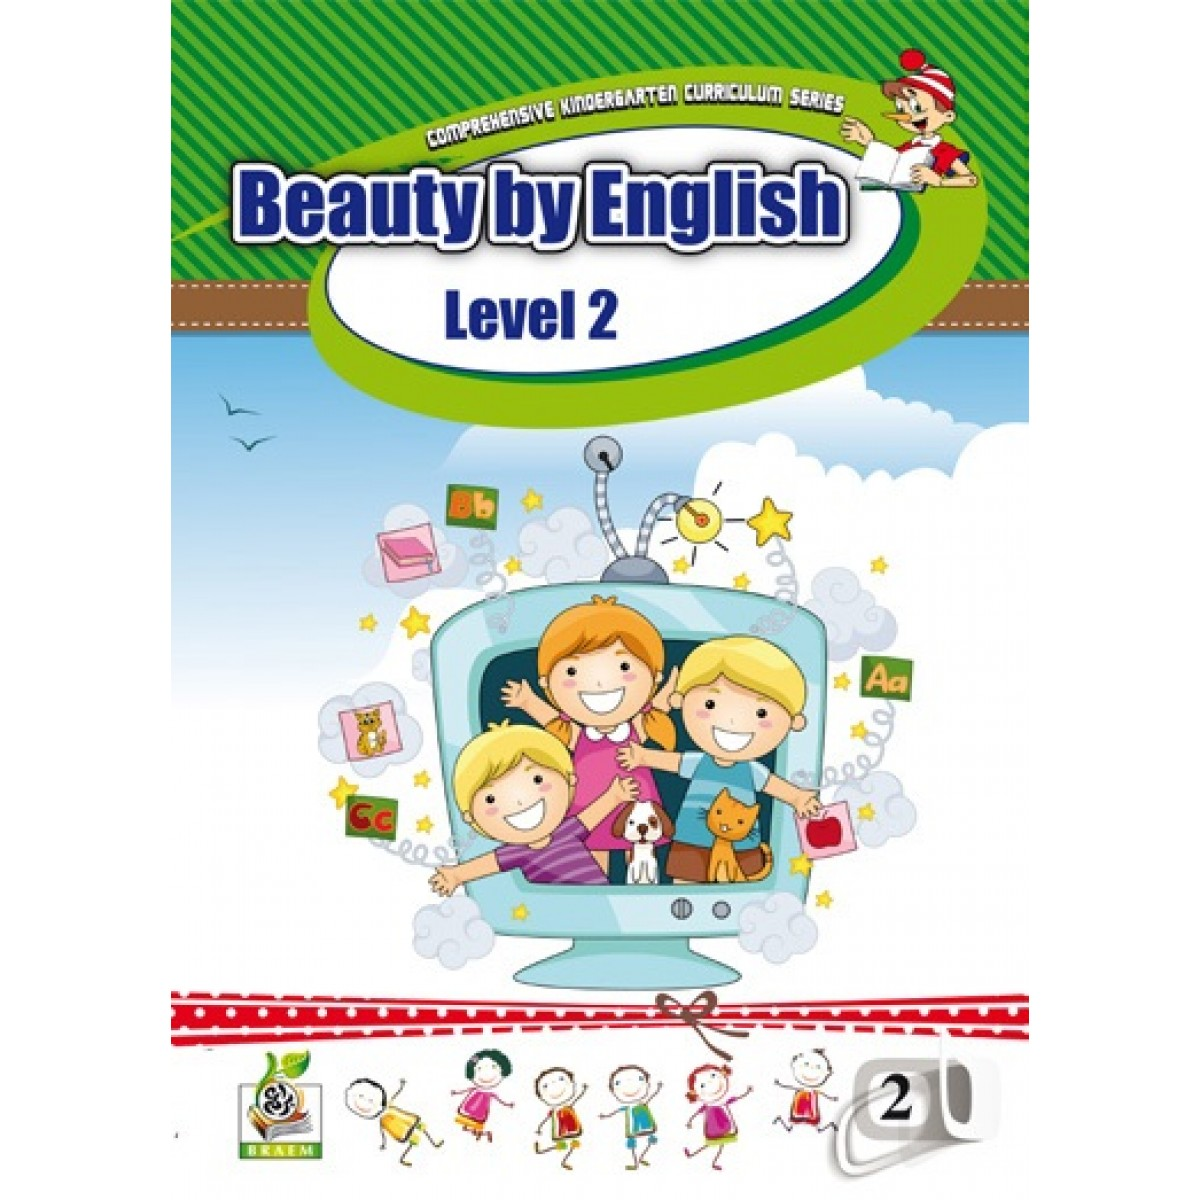 Beauty by English Student s Book Level 2 مستوى  K.G.2